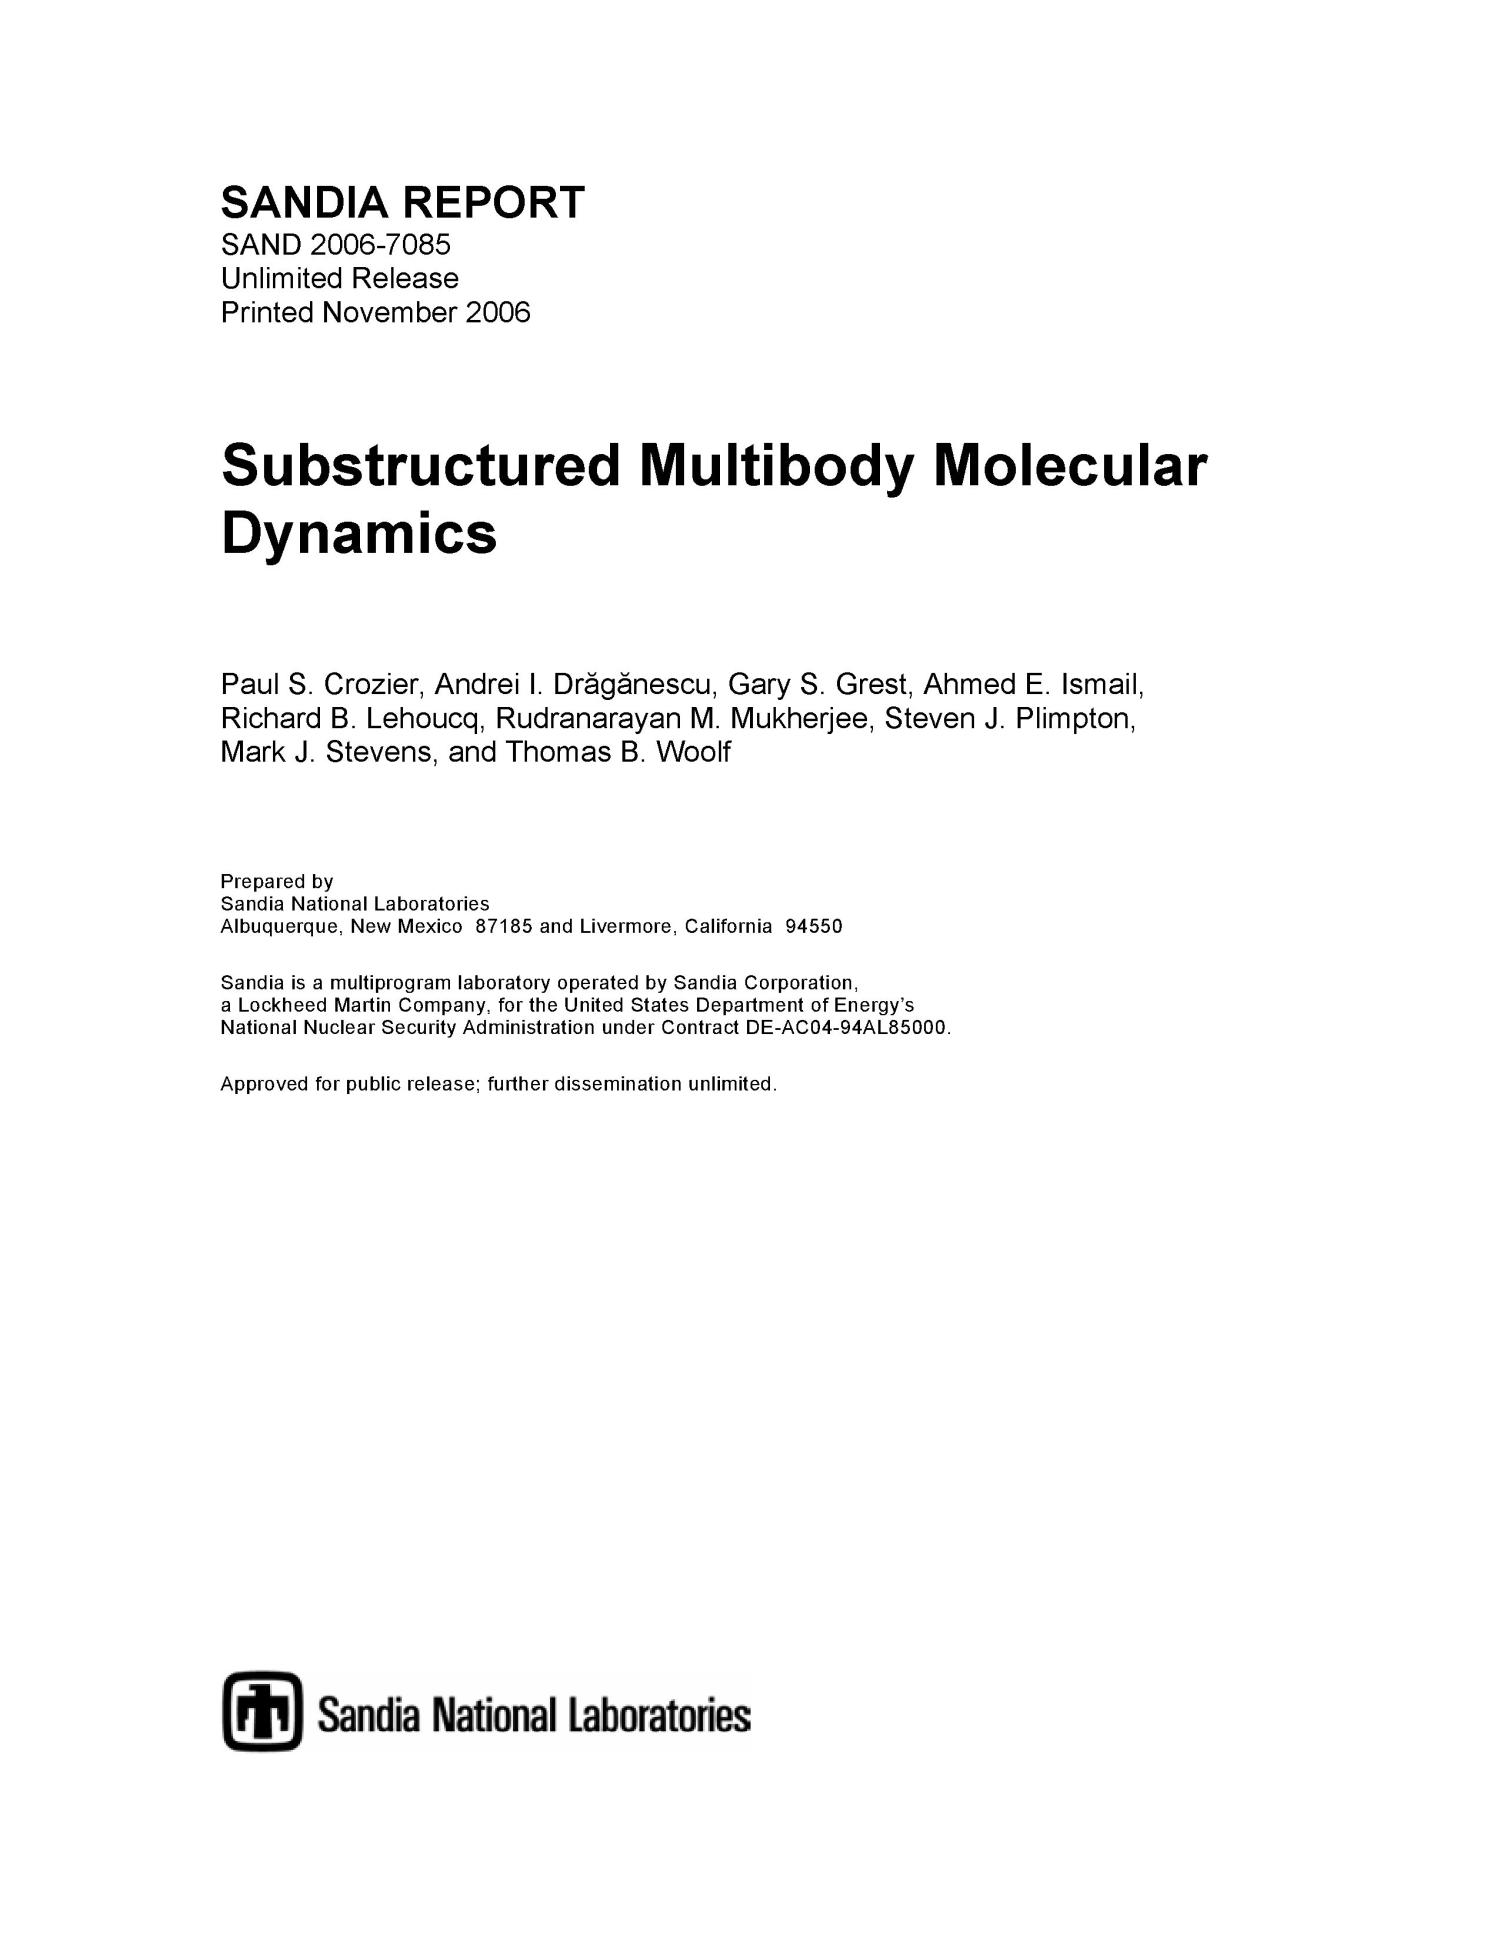 Substructured multibody molecular dynamics.                                                                                                      [Sequence #]: 1 of 107